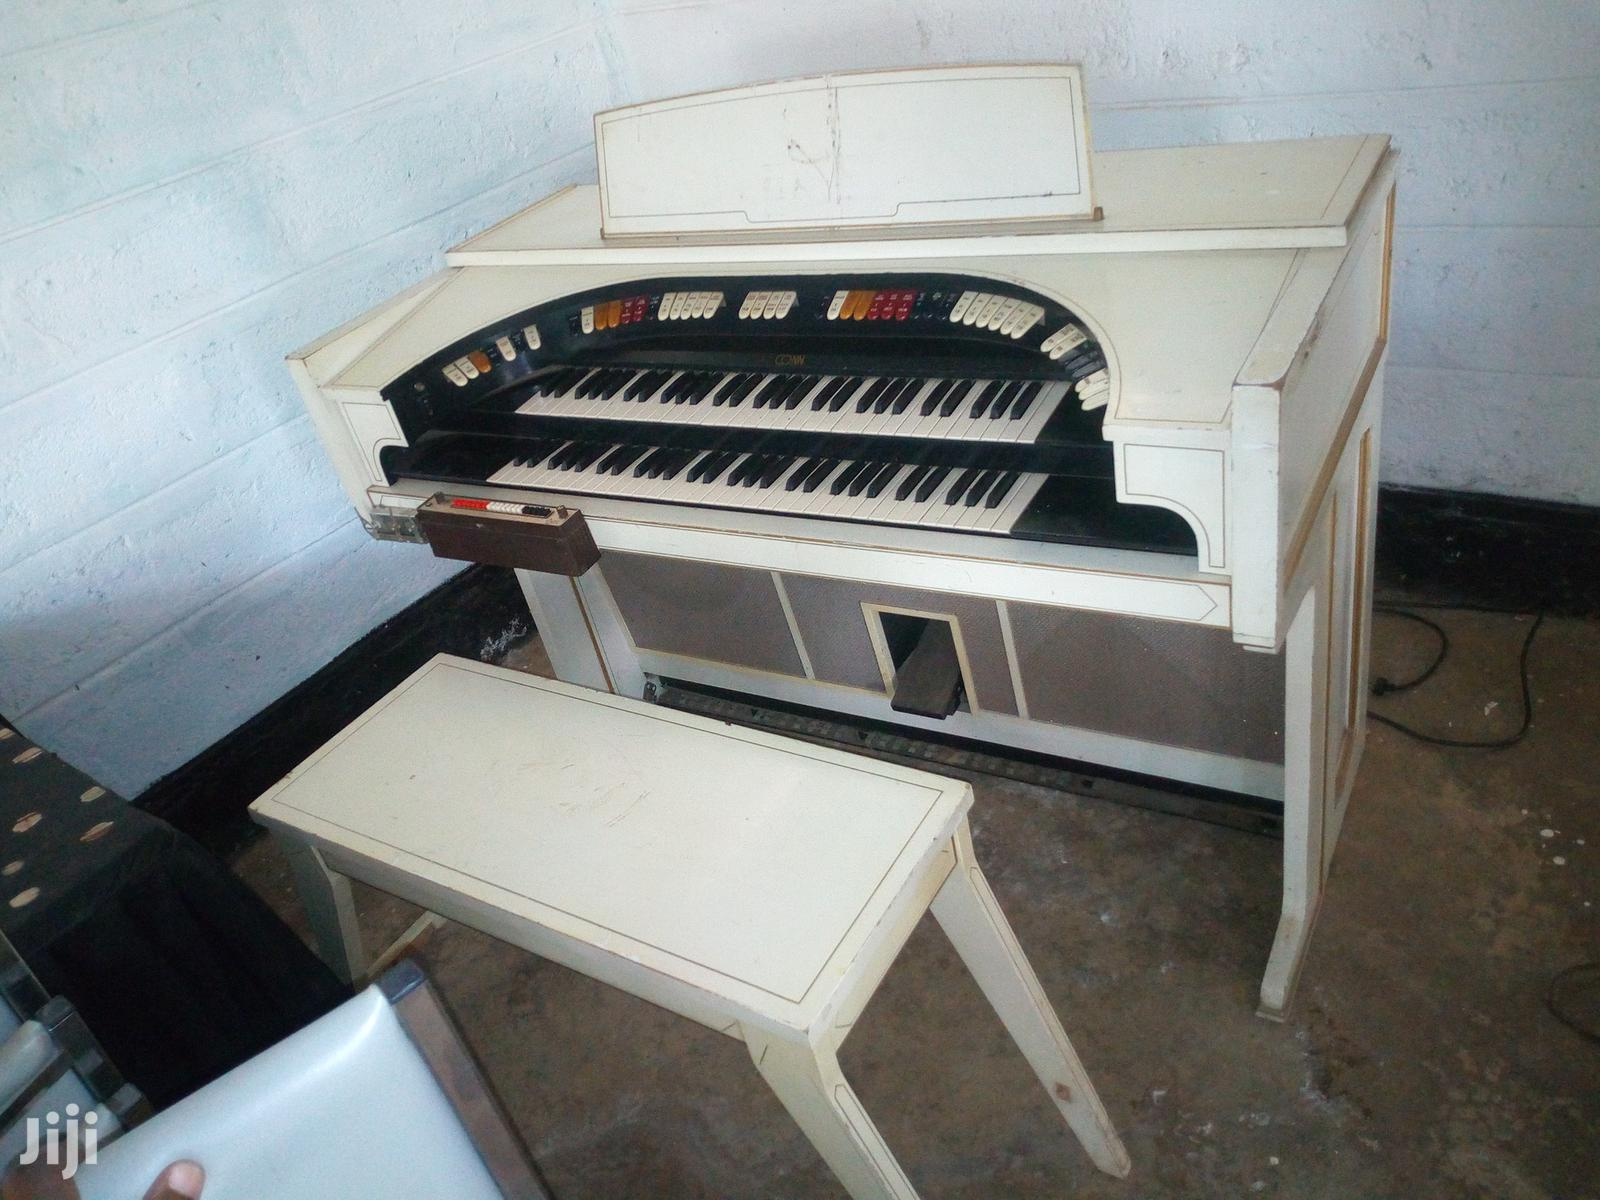 Archive: The Conn Organ Musical Equipment